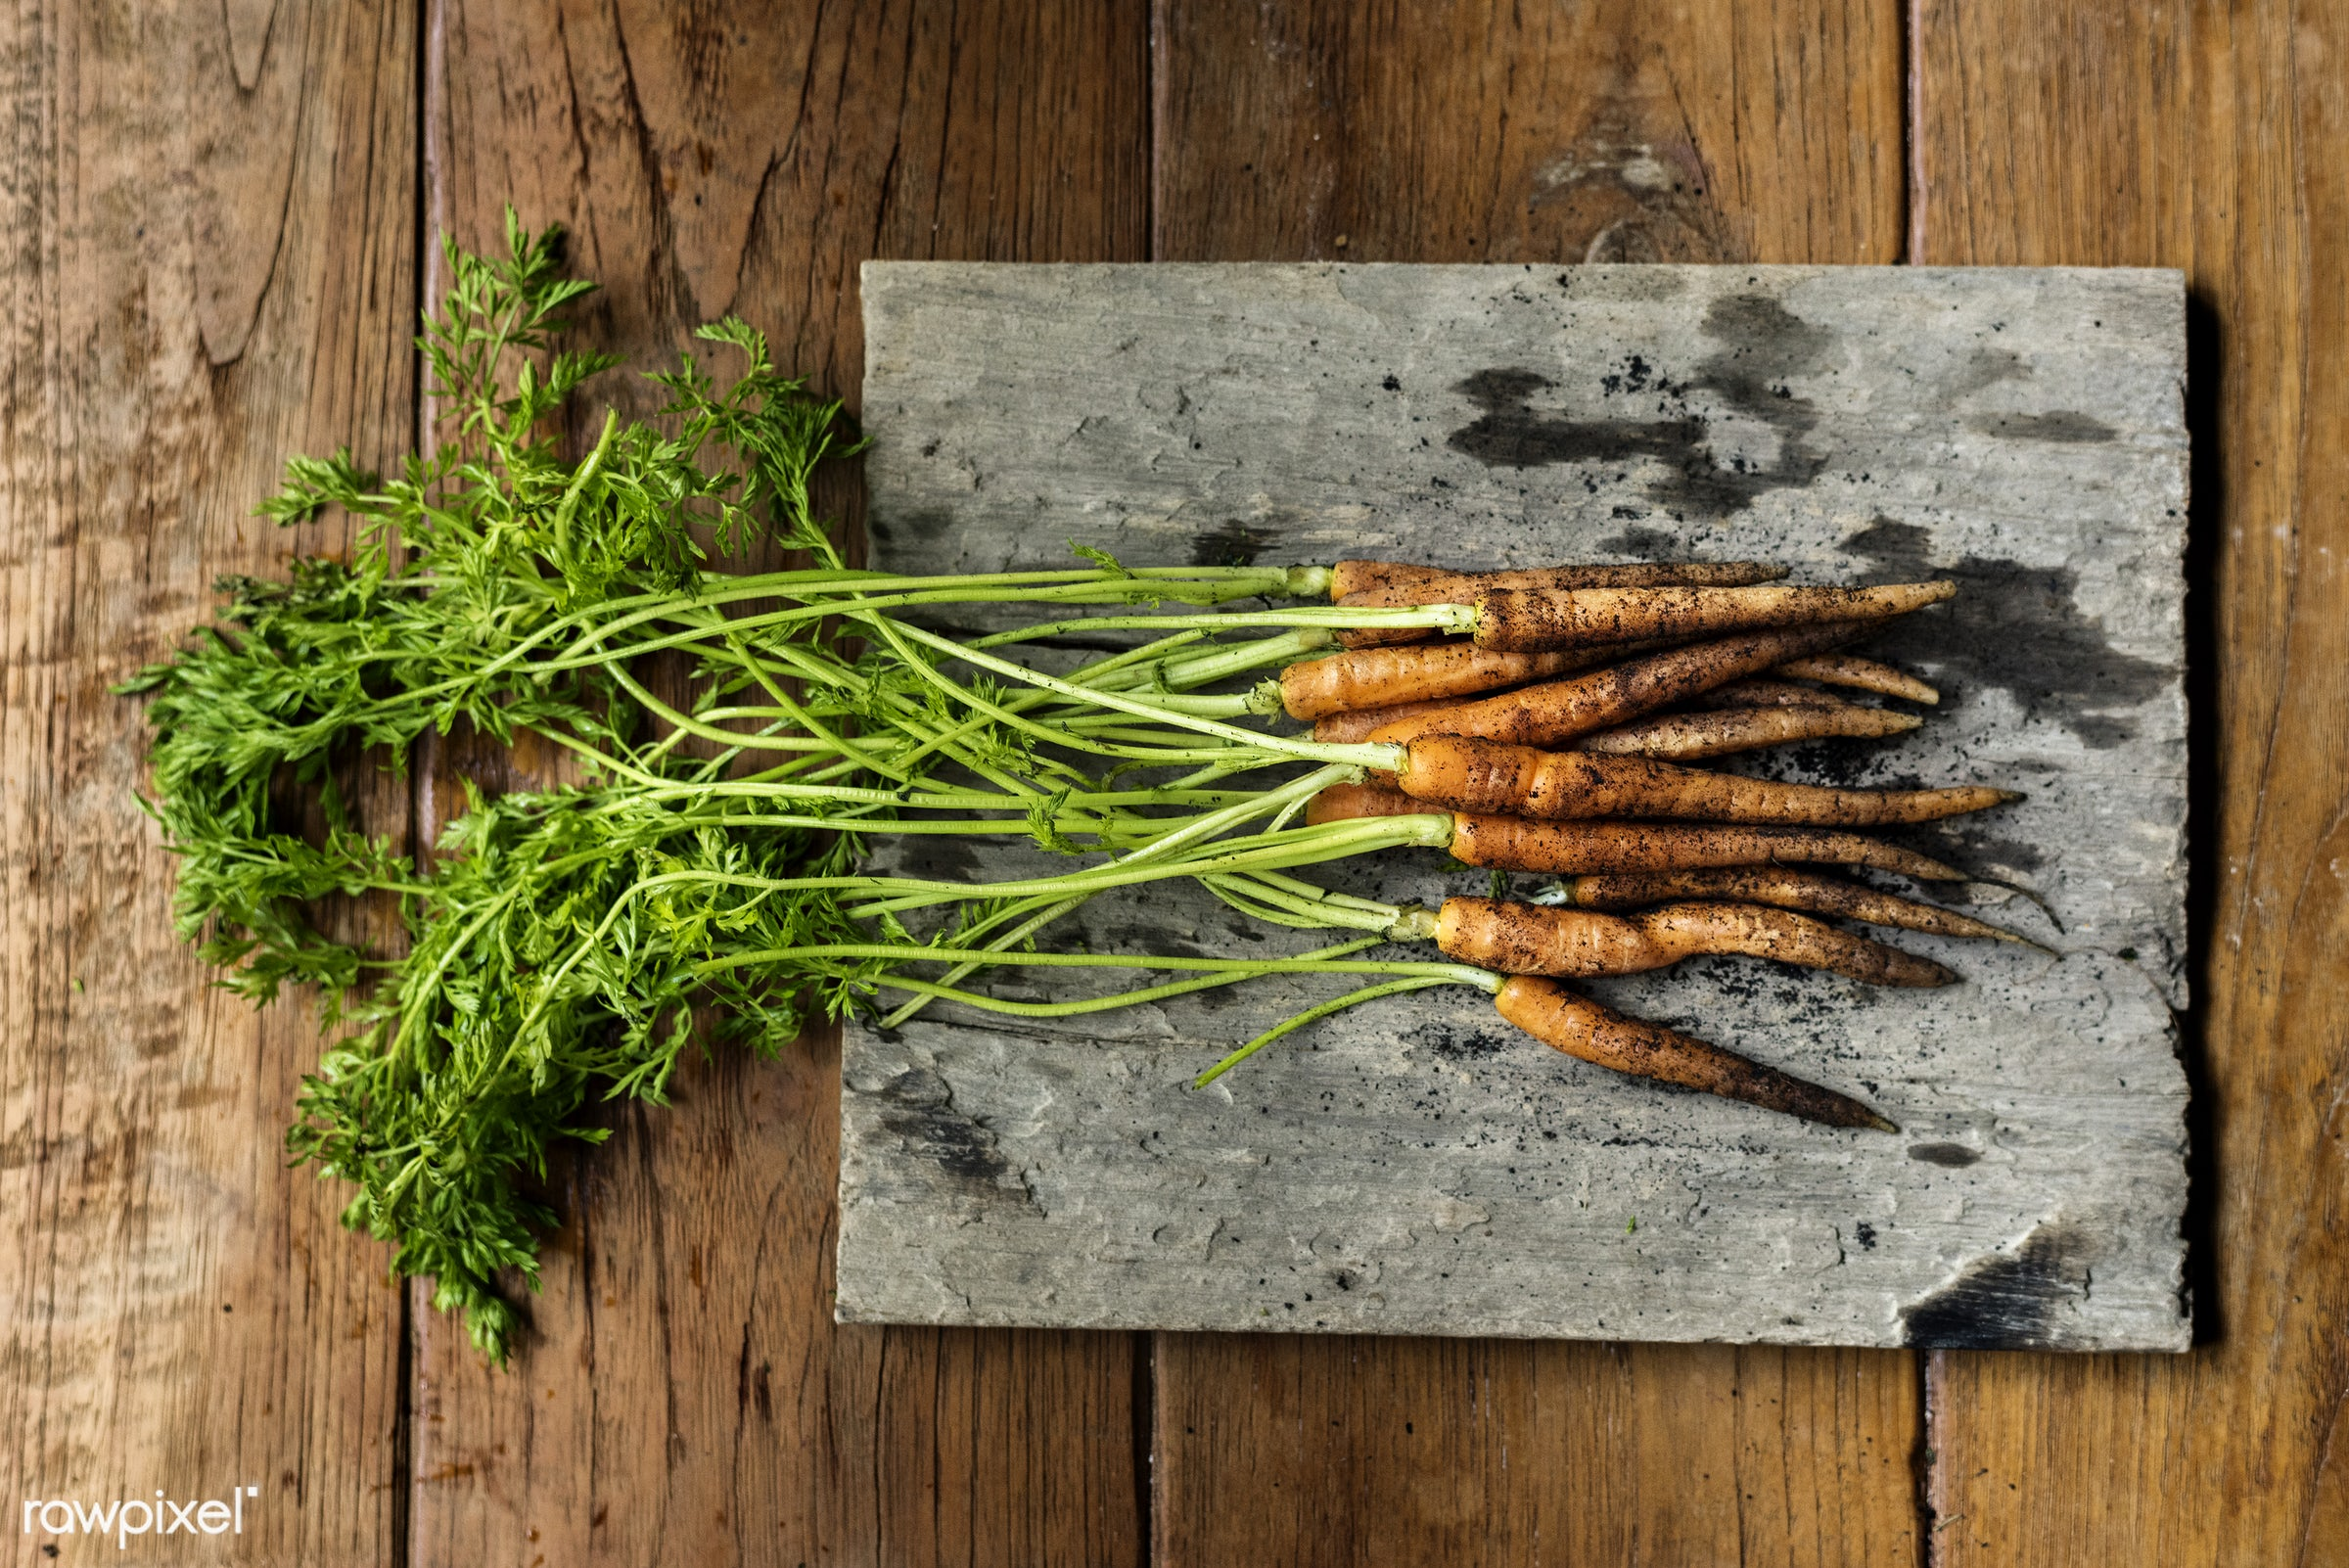 aerial, nutrients, real, organic, fresh, carrots, bunch, dirt, vegetable, closeup, wooden table, soil